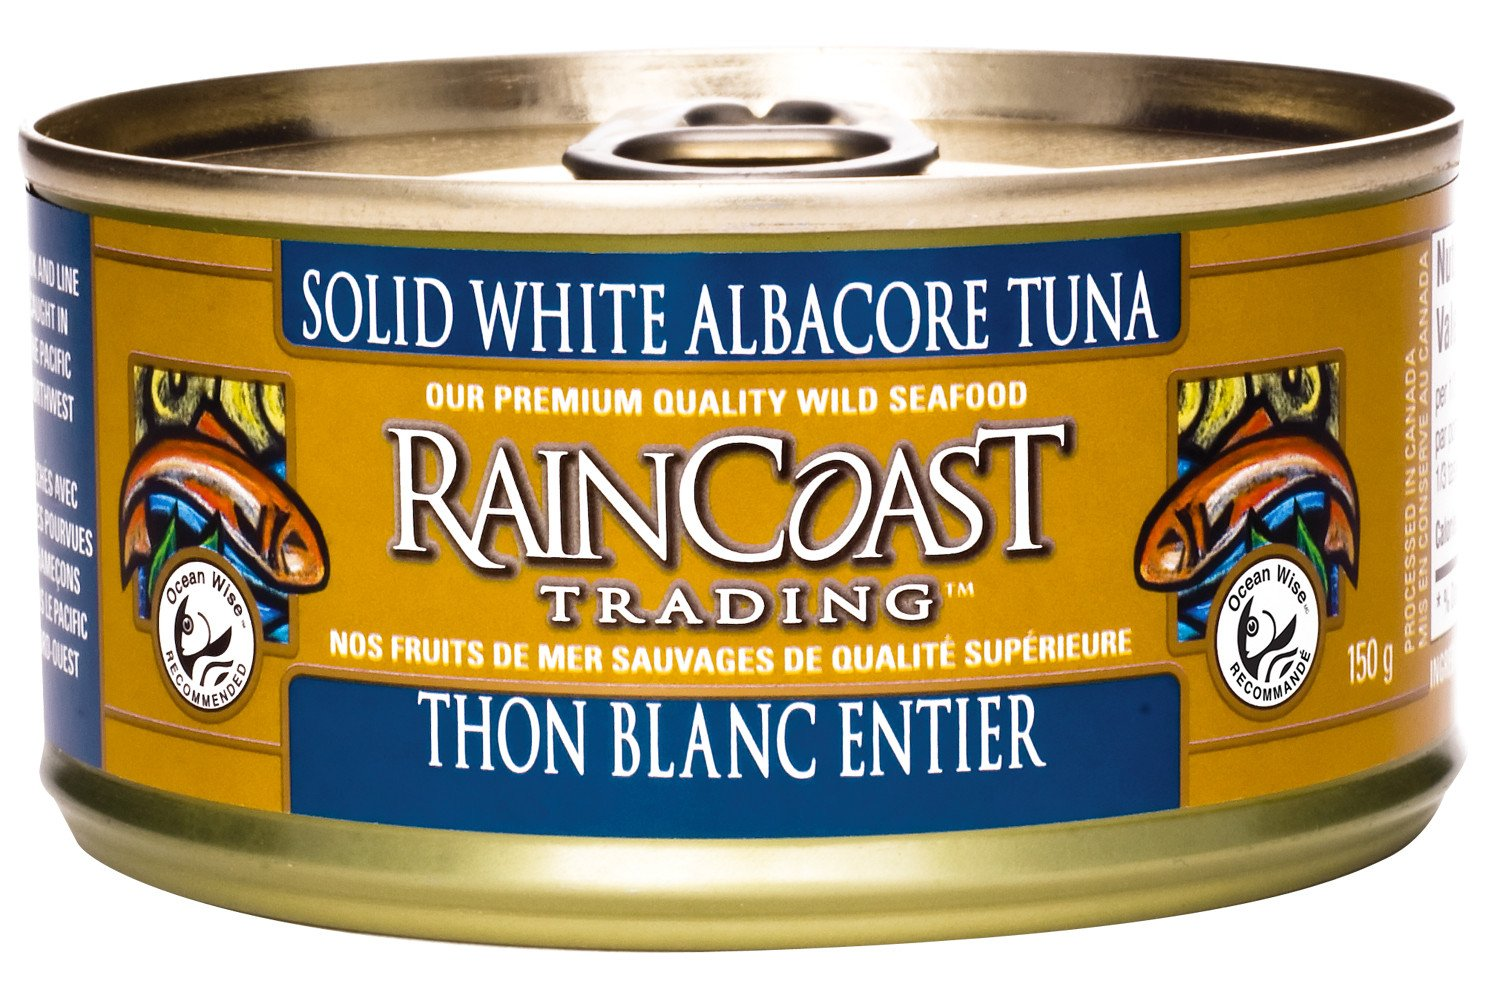 Canadian Tuna Brands Fight over Advertising Claims Based on Greenpeace Chain Sustainbility Rankings